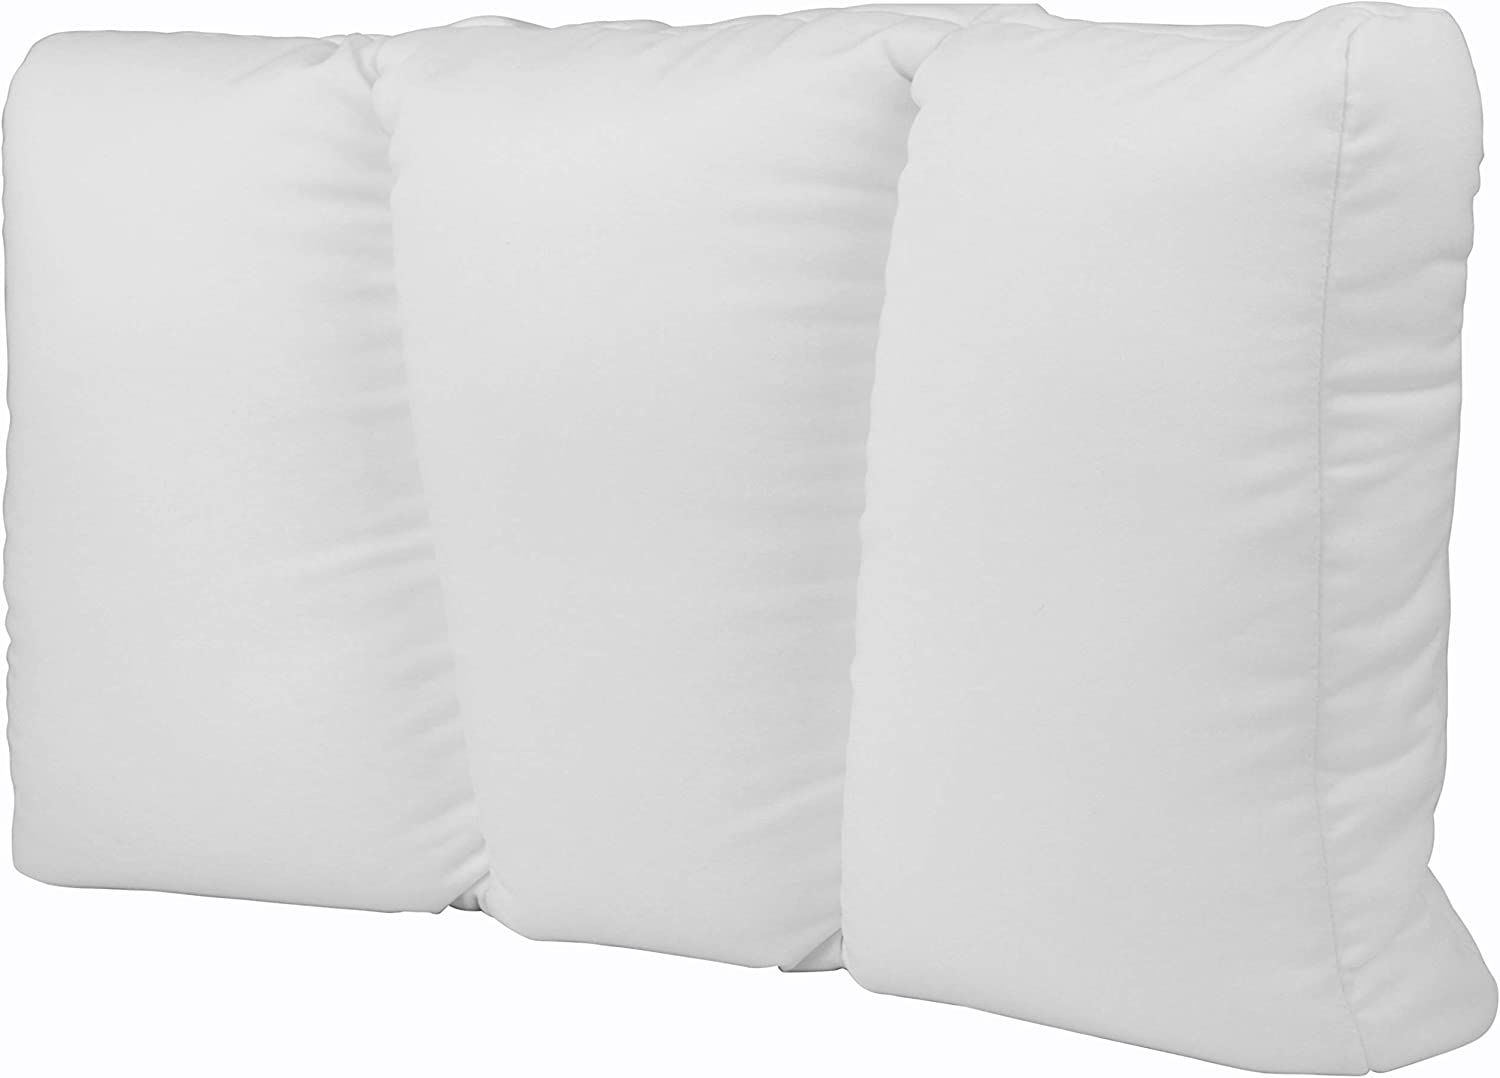 Microbead Cloud Pillow - Small (18.5